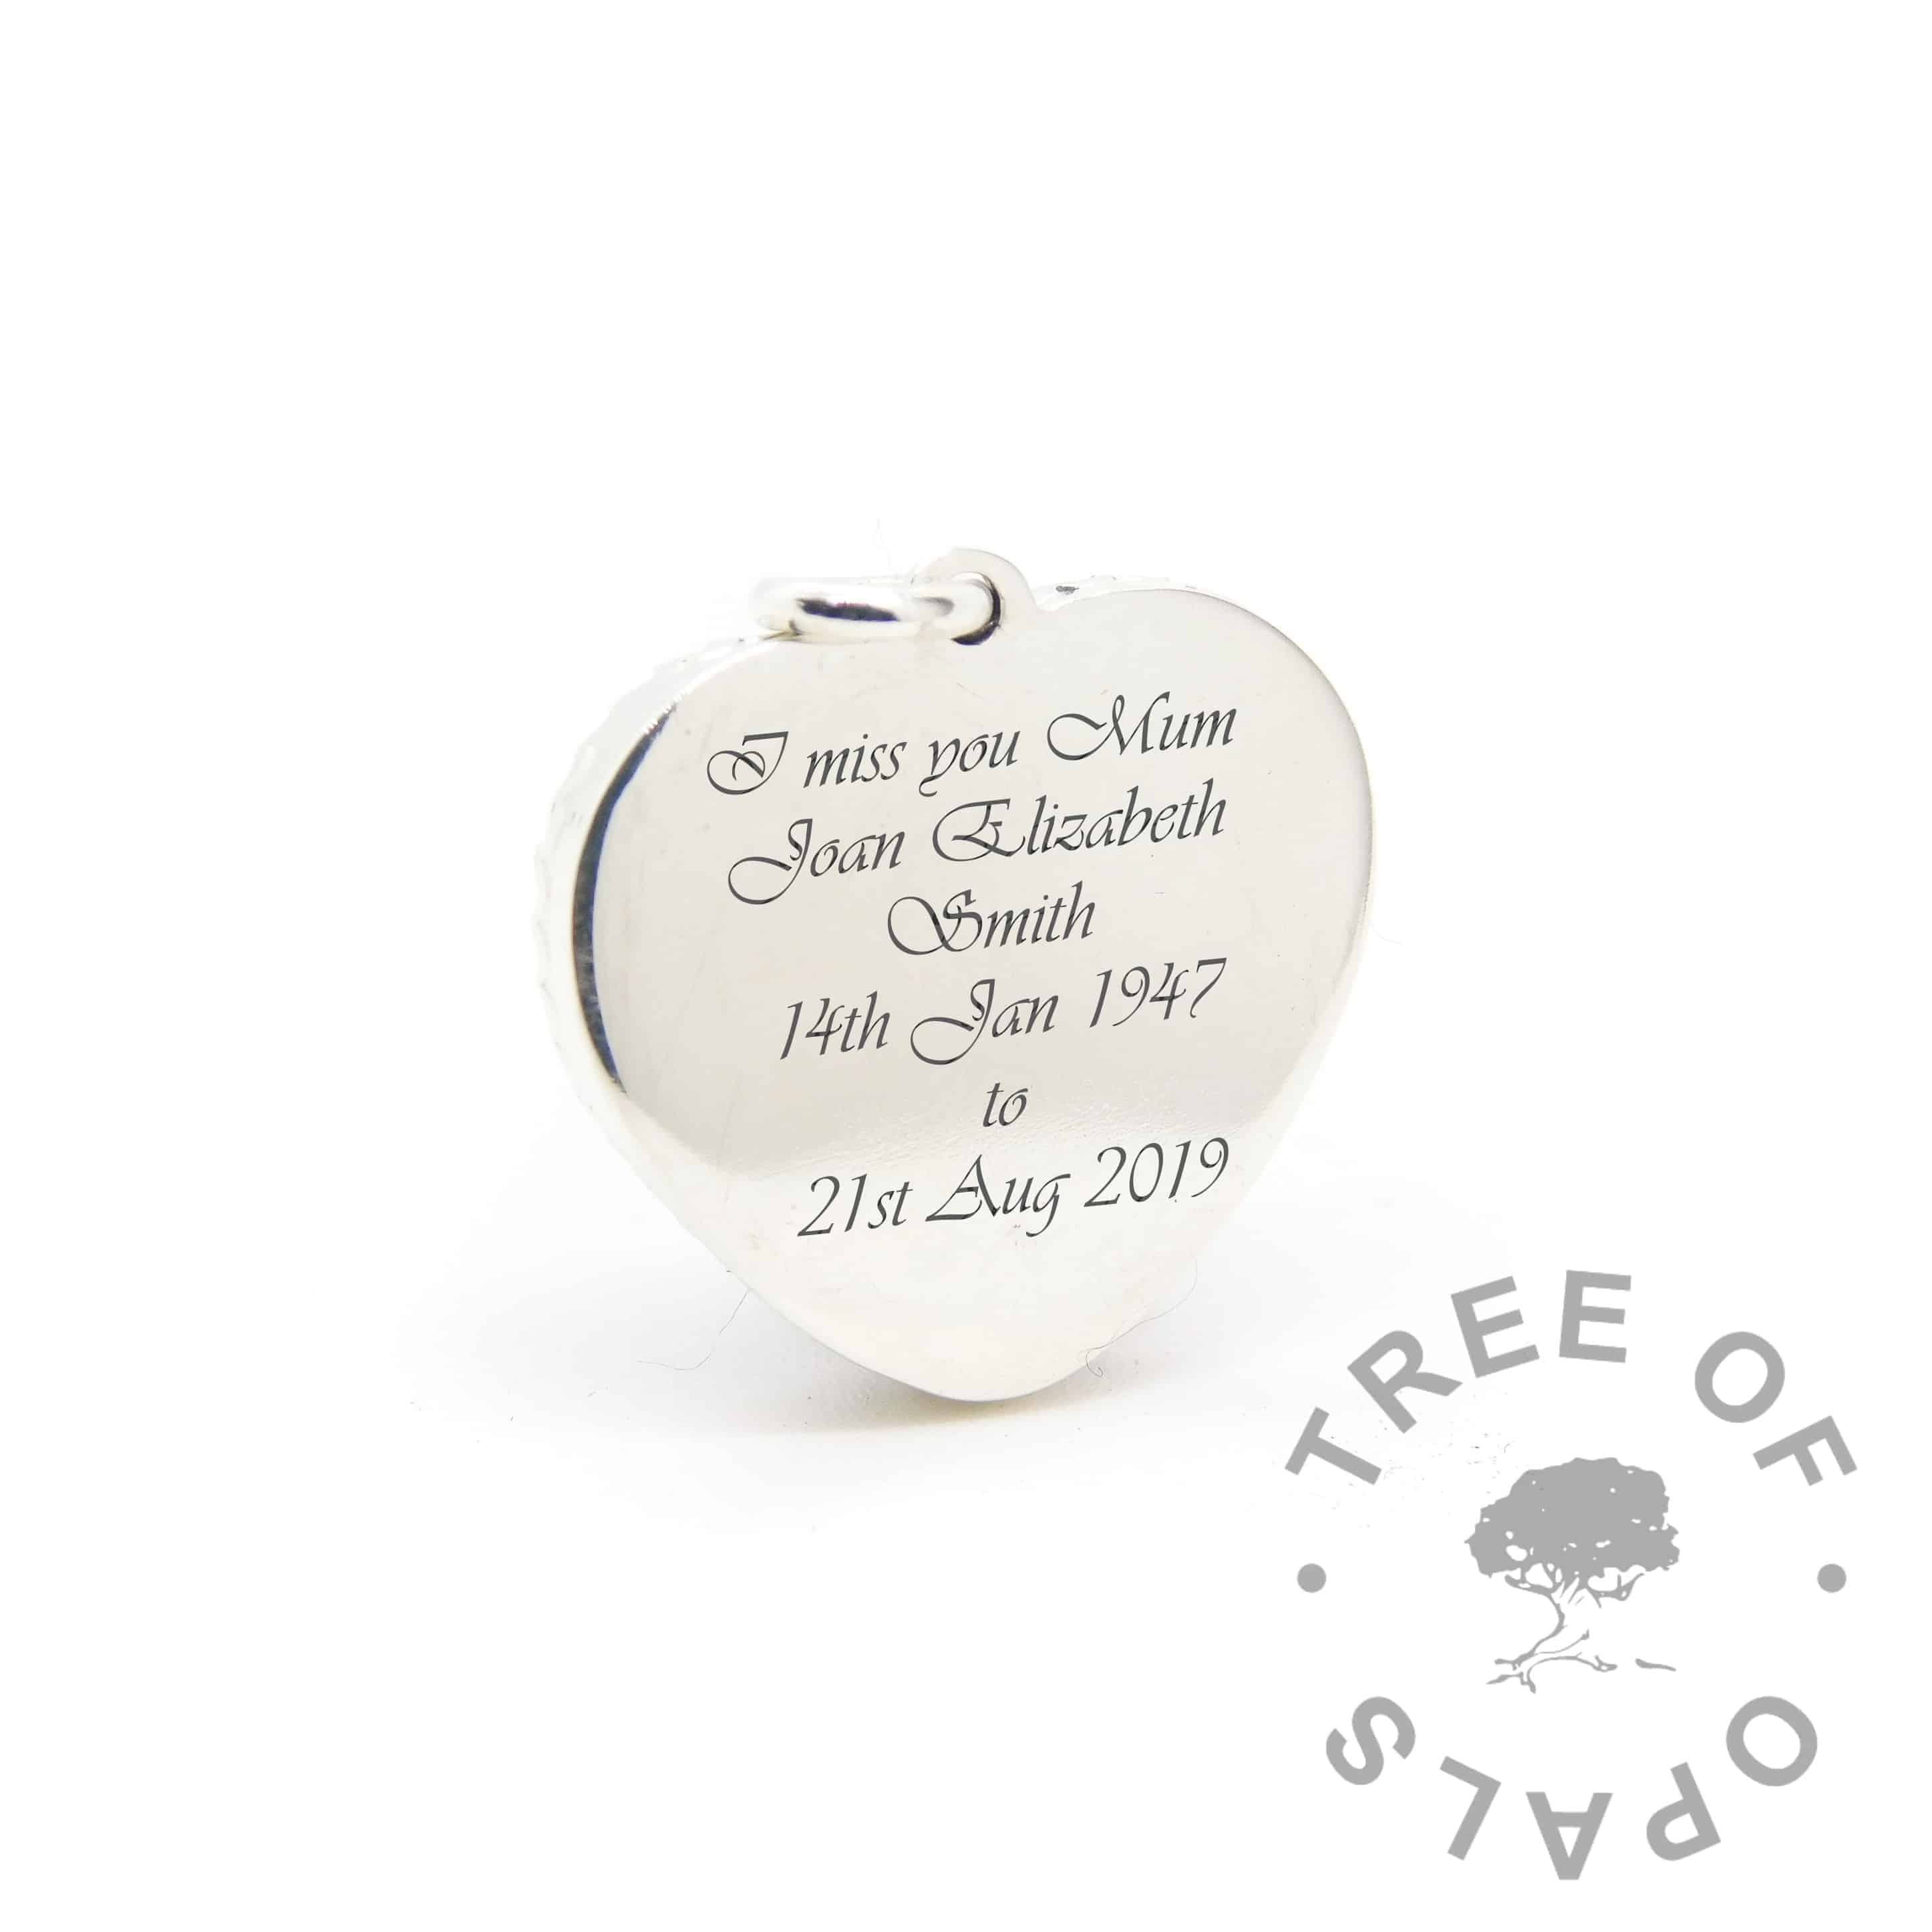 new style heart necklace back, engraving in Vivaldi font (engraving mockup)